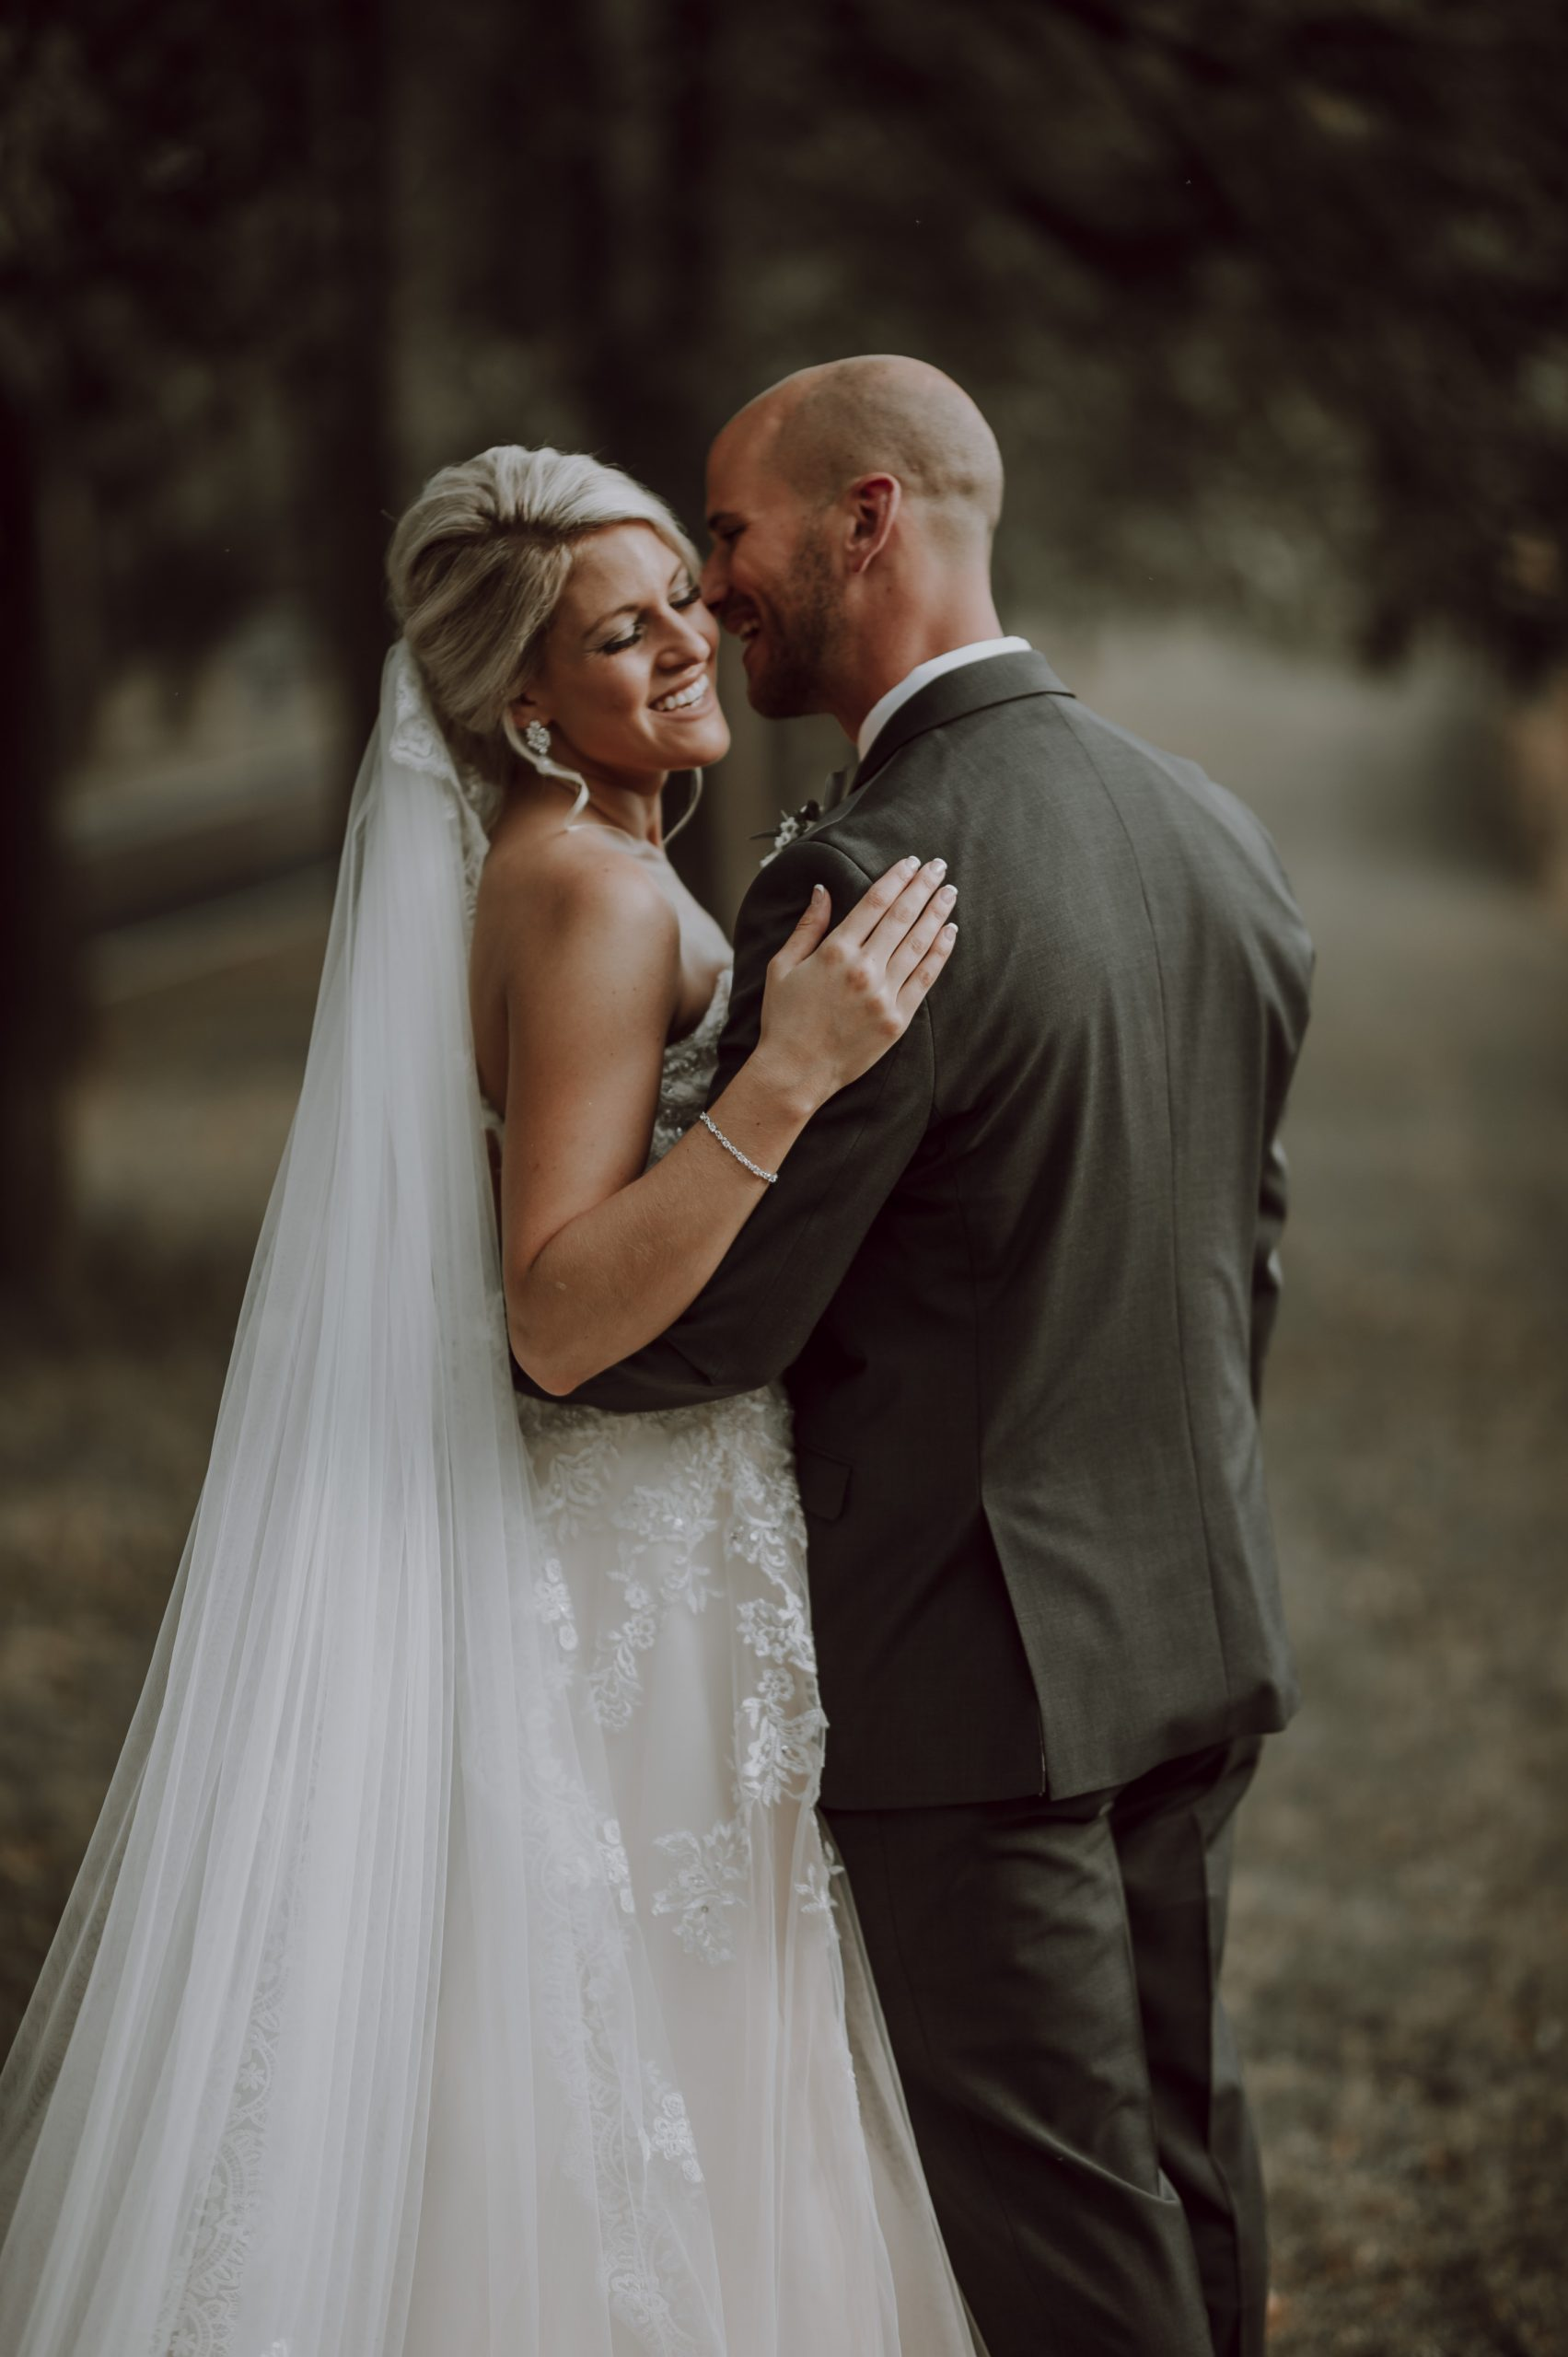 Laughing in love. Elegant bride with dapper groom. Captured by Lovefusion Photography at Stock's Manor in Mechanicsburg, PA. Featured on Dream Weddings.